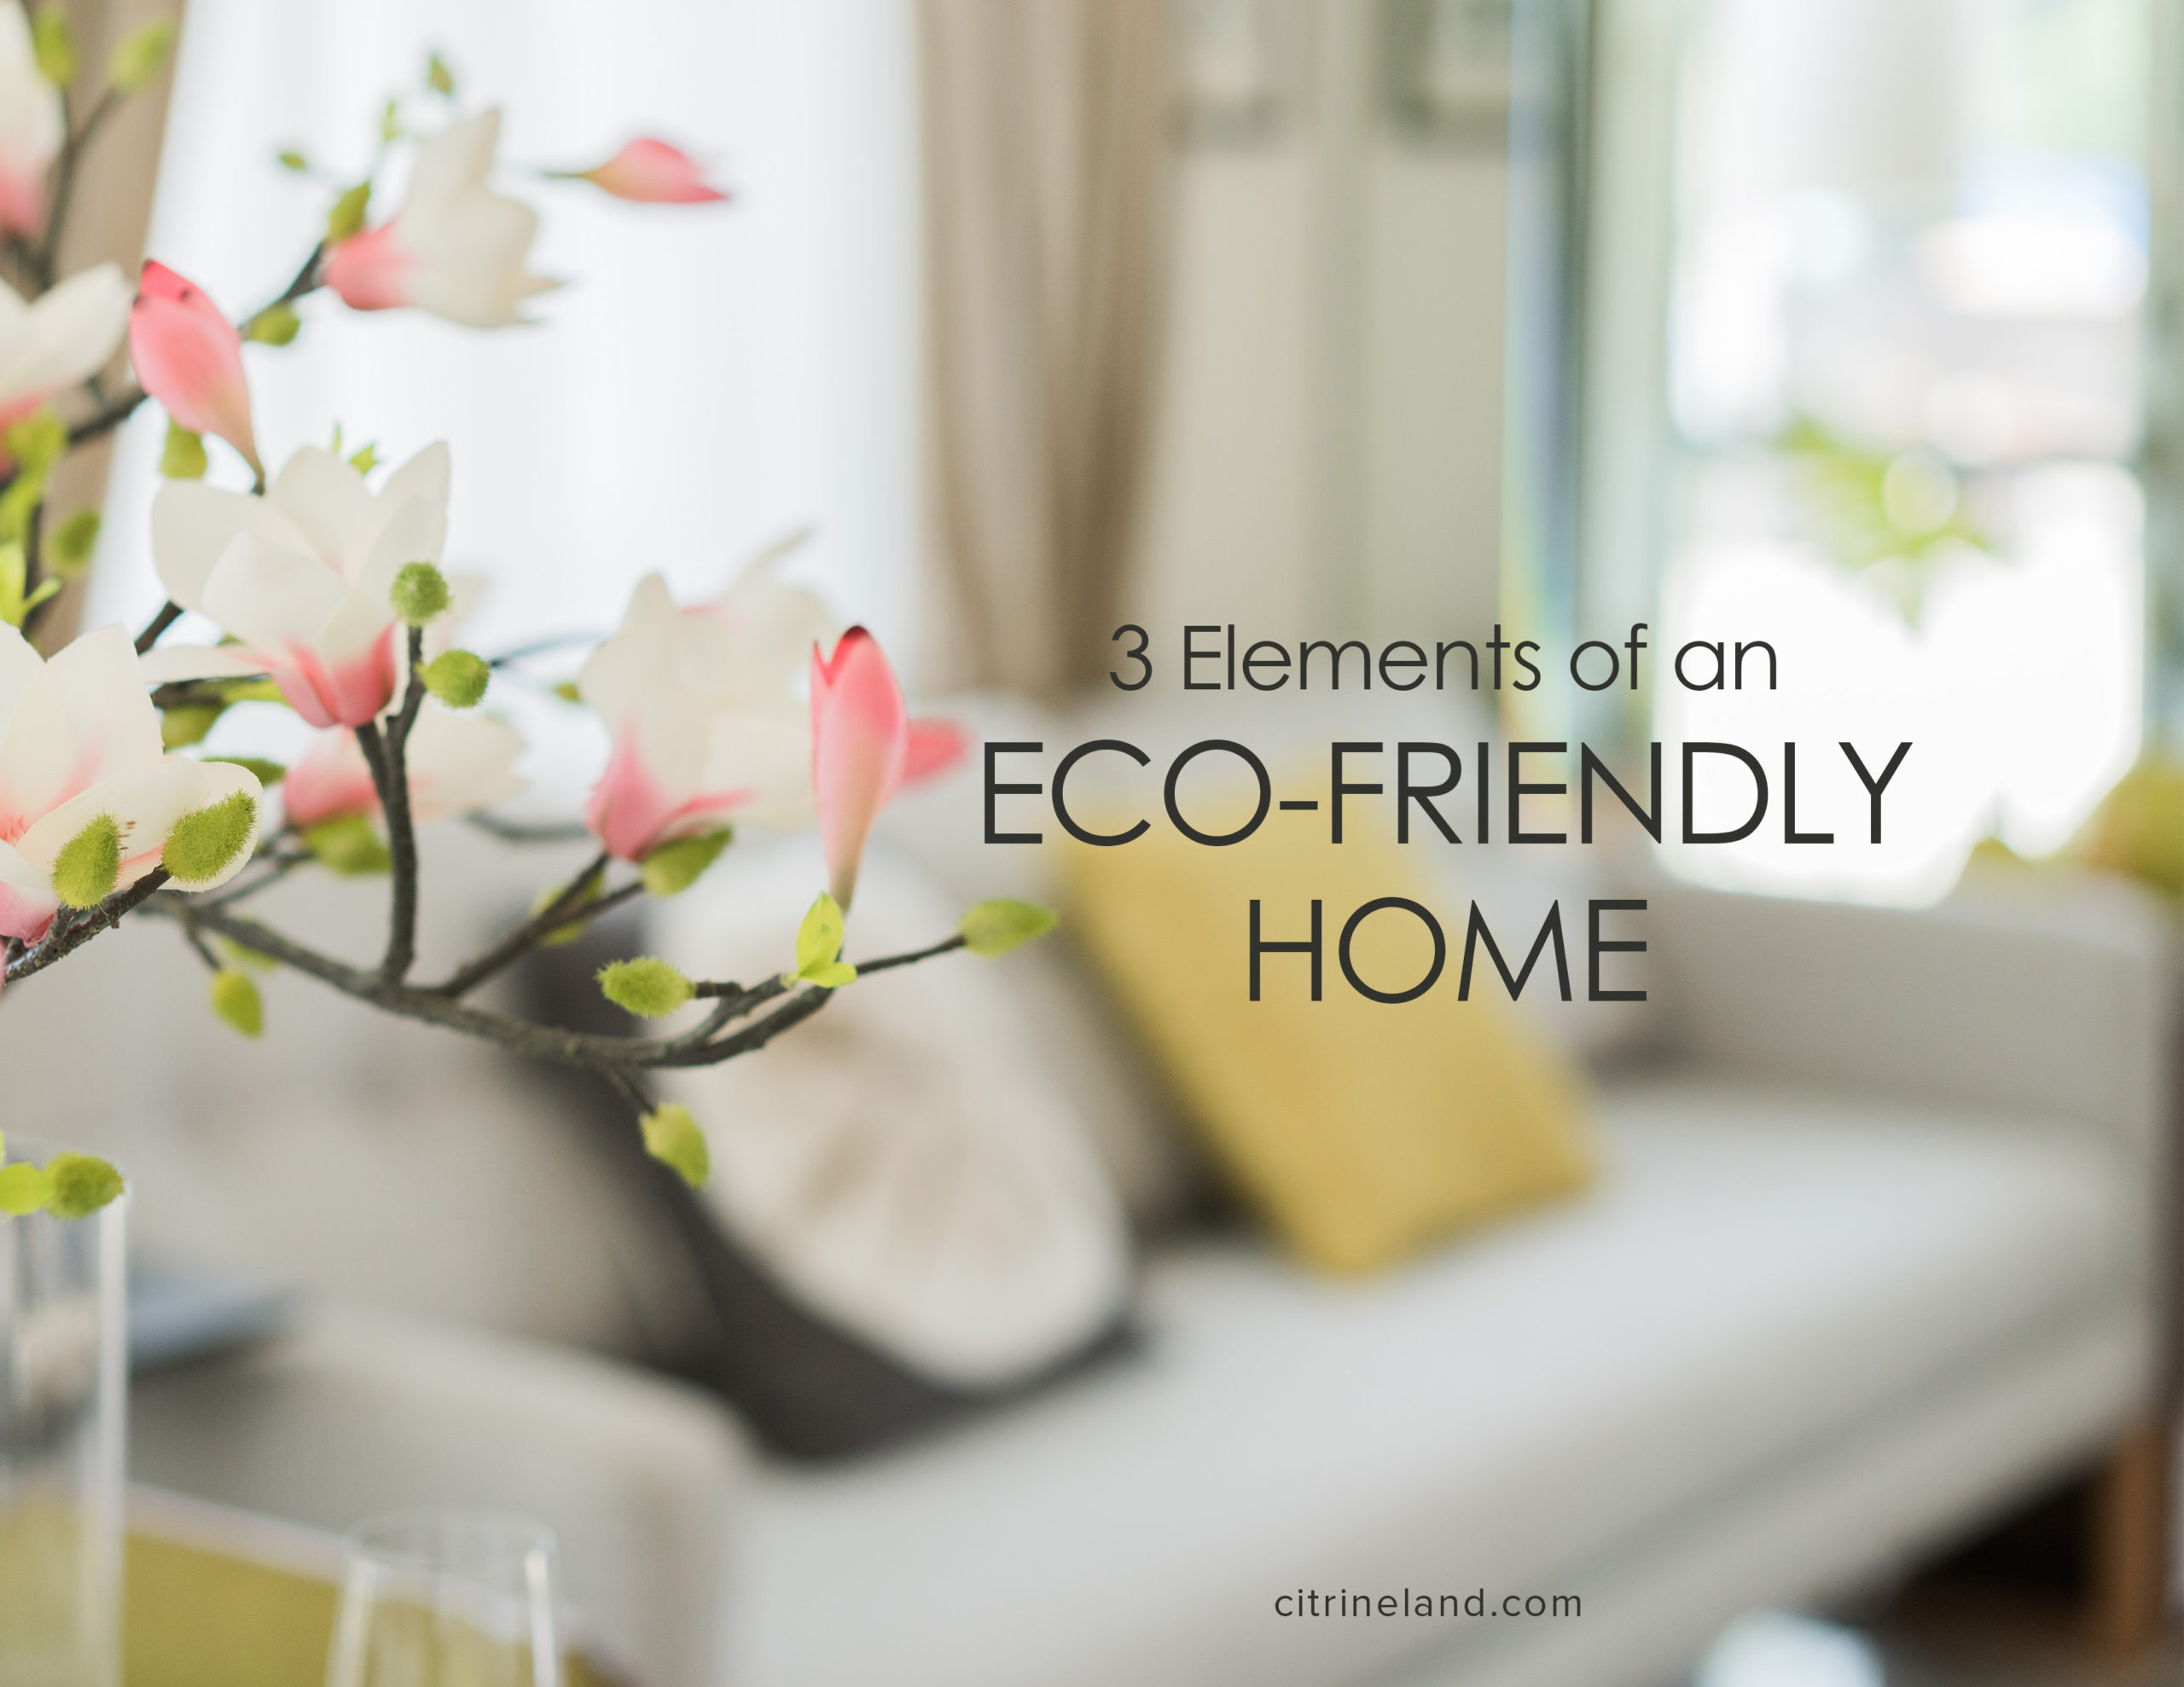 Looking For An Eco-Friendly Home? 3 Elements You Need To Consider